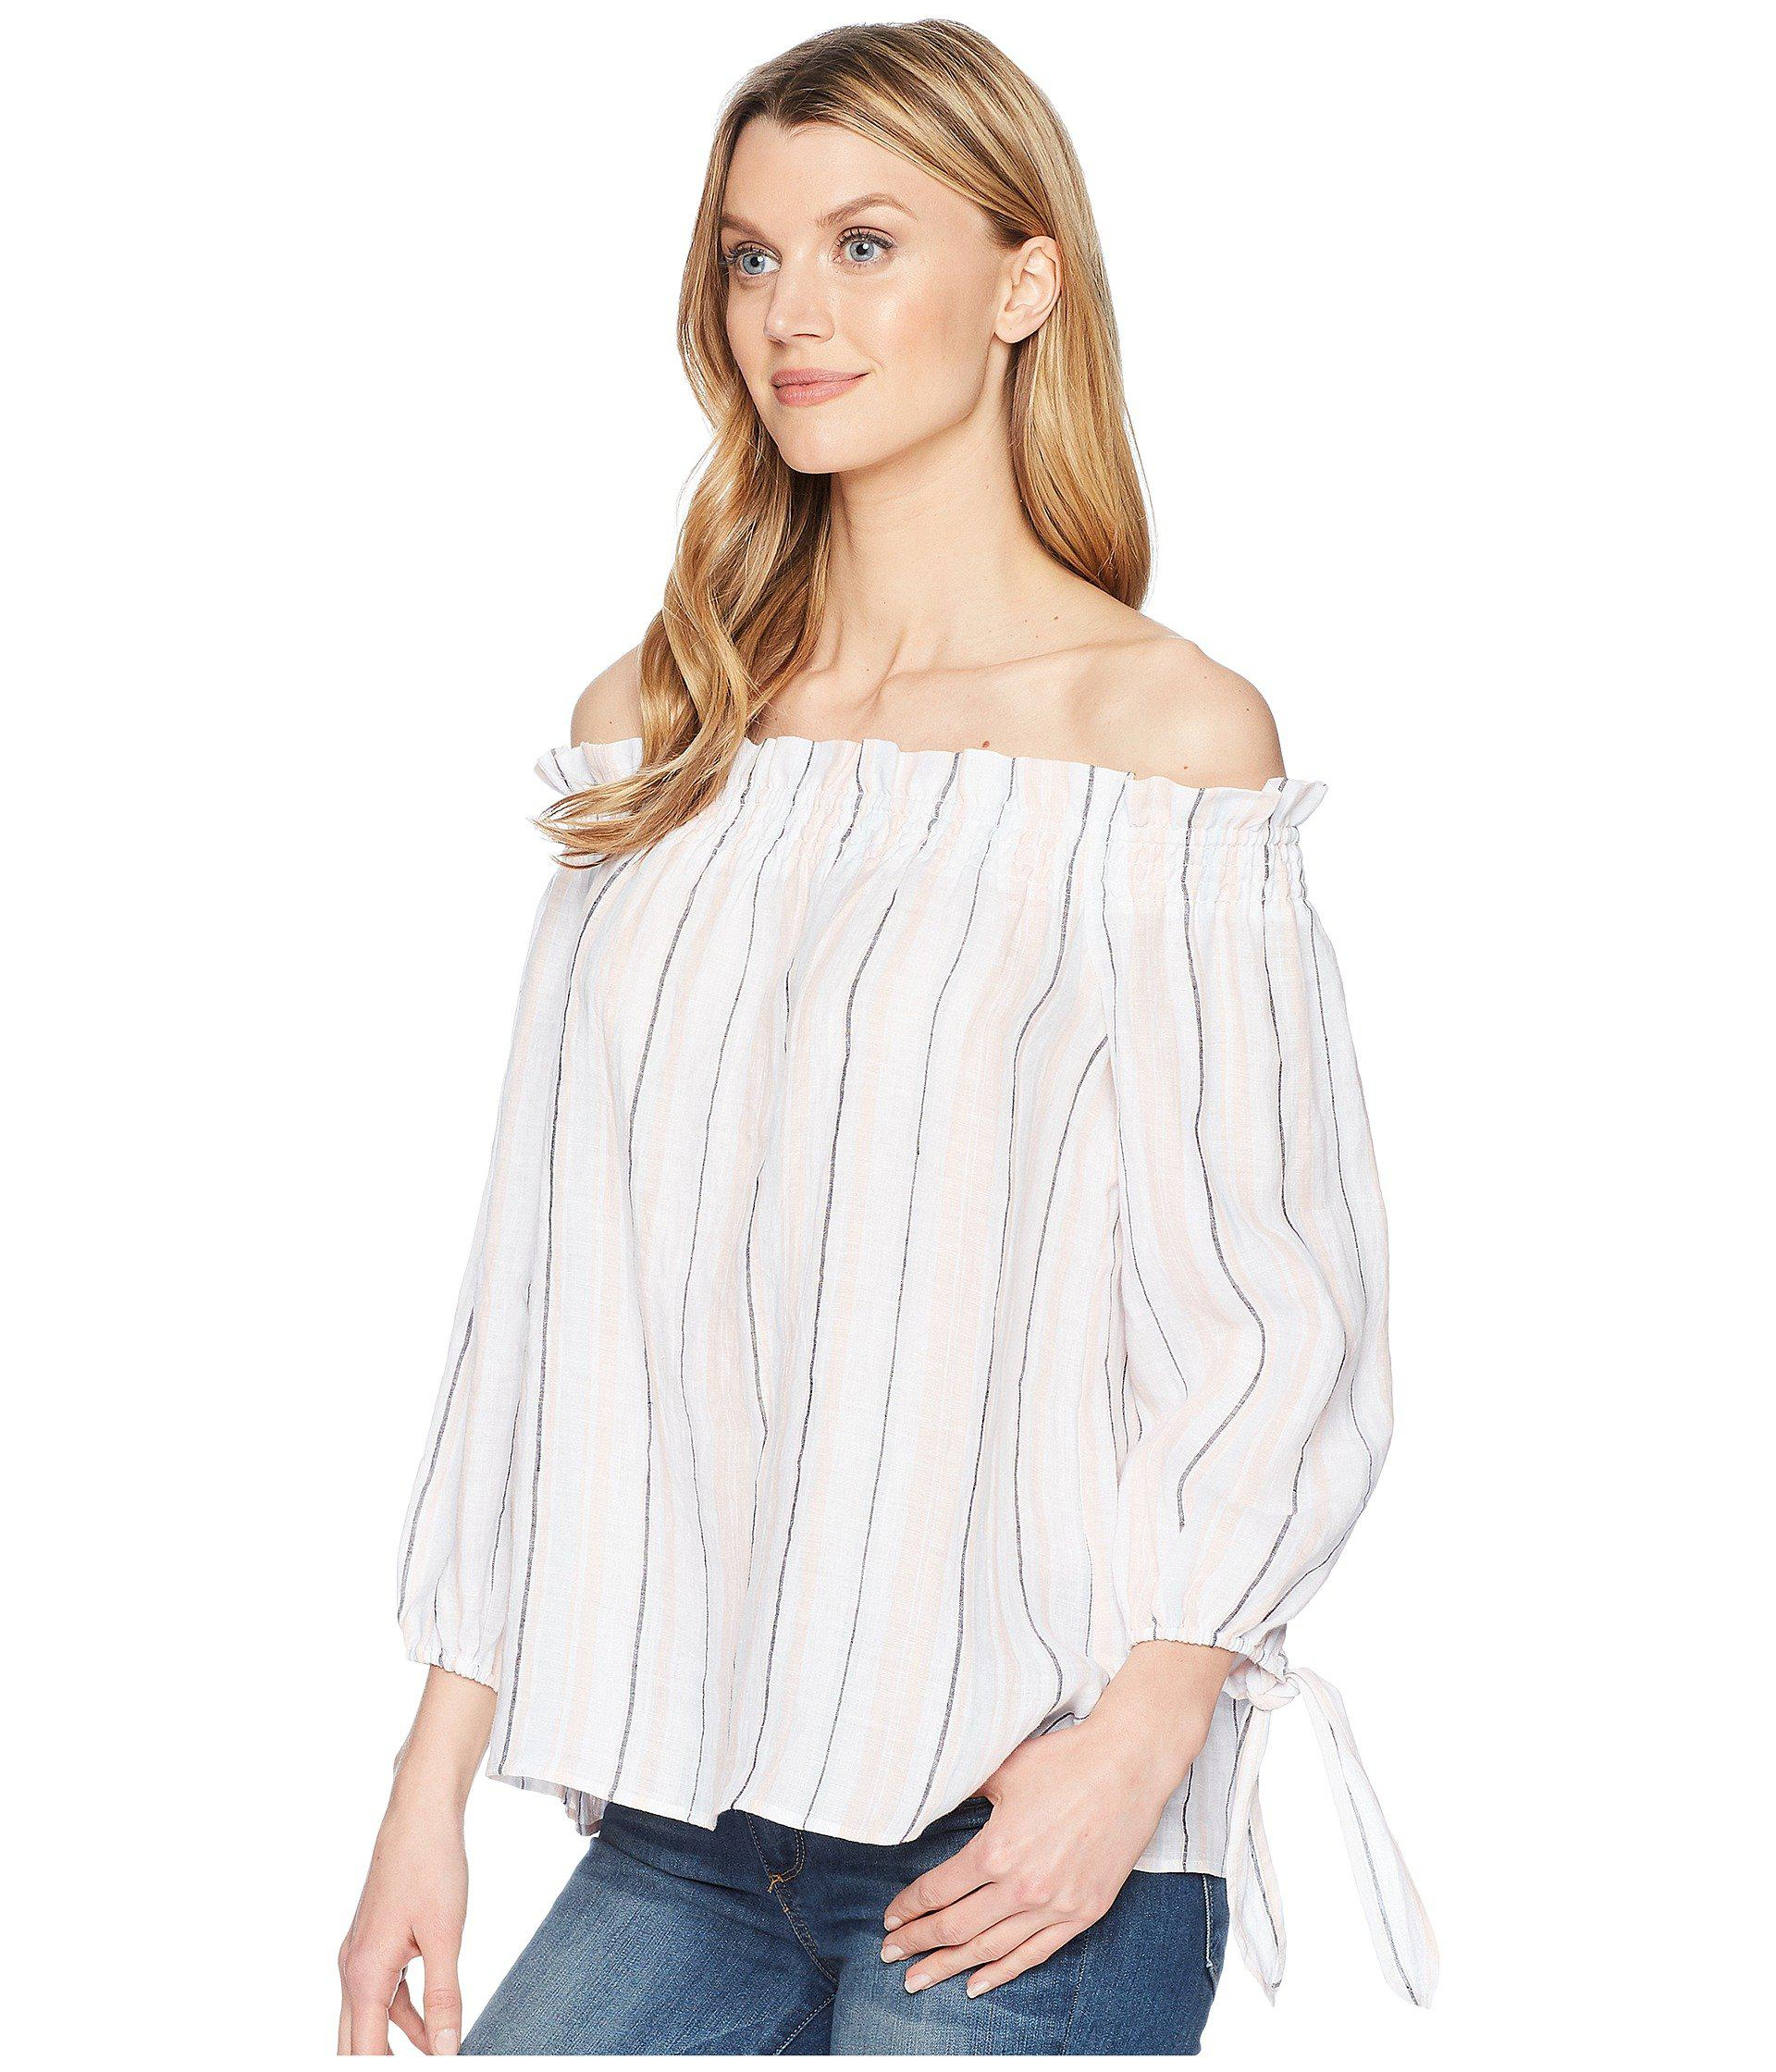 8bd52e3f3fe Lyst - Two By Vince Camuto Long Sleeve Off Shoulder Seashore Stripe Linen  Blouse in White - Save 58%